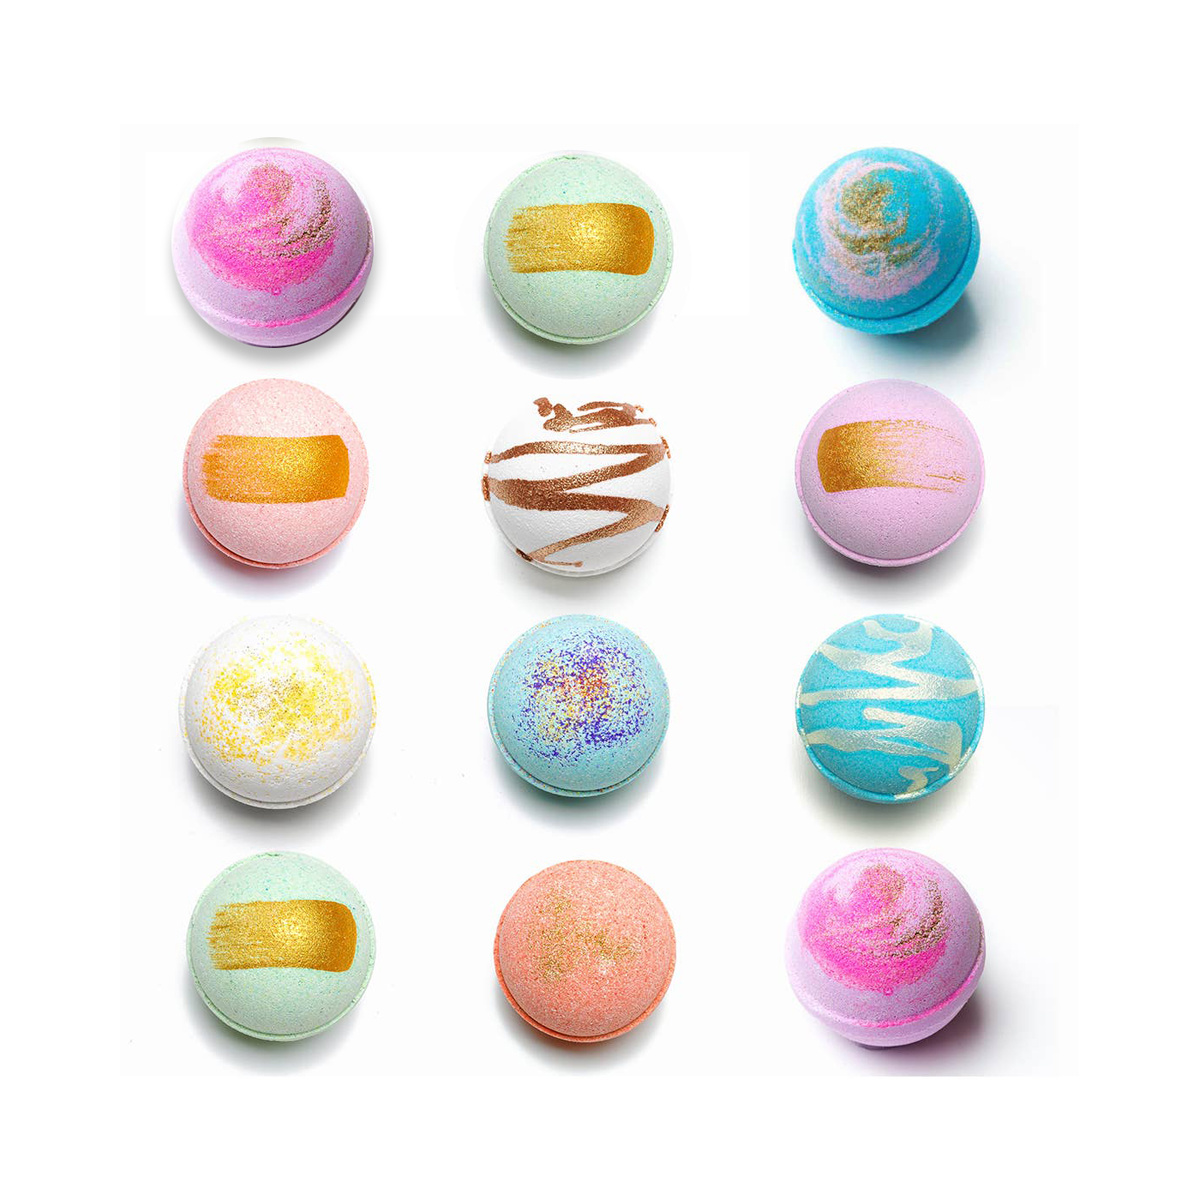 Latika Body Essentials - LBE Latika Bath Bombs - Various Scents